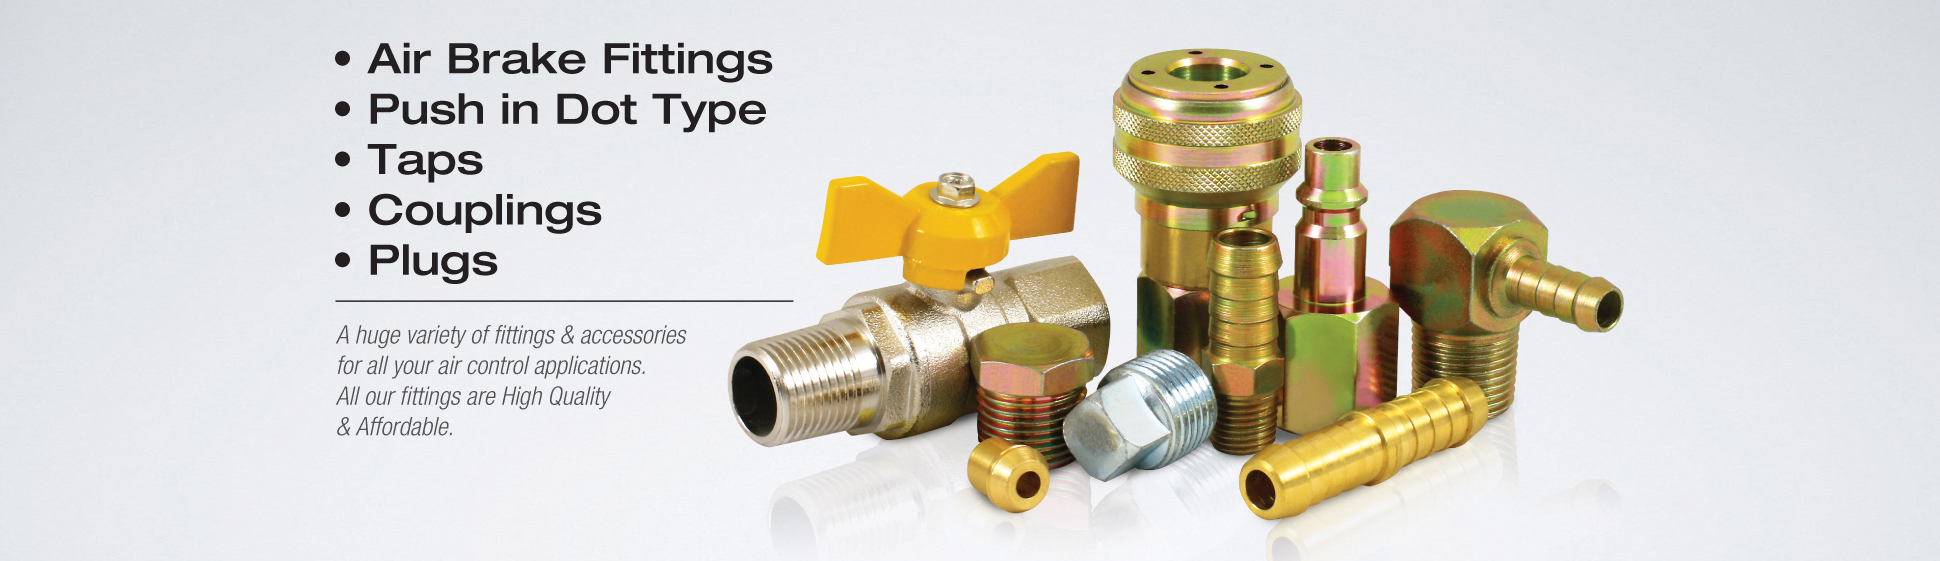 Brass Air Brake Fittings